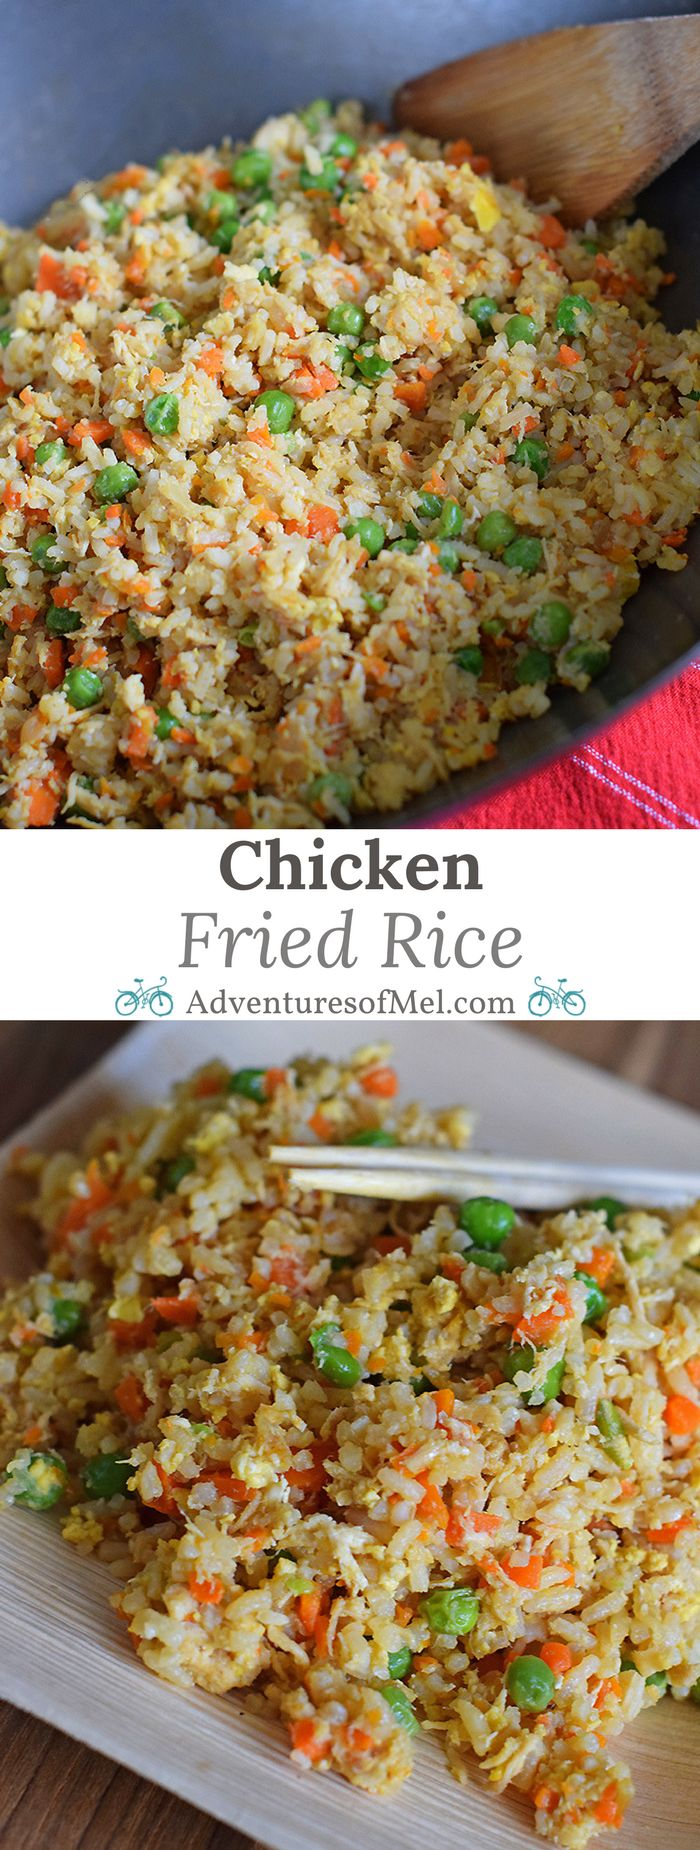 Chicken Fried Rice is one of my favorite things to order when we go out to eat. Now we make it at home, thanks to my husband's delicious recipe, and it's so much better than takeout. Plus you can use the leftovers to make Chicken Fried Rice Spring Rolls, yet another one of our favorite Asian foods! via @mellockcuff